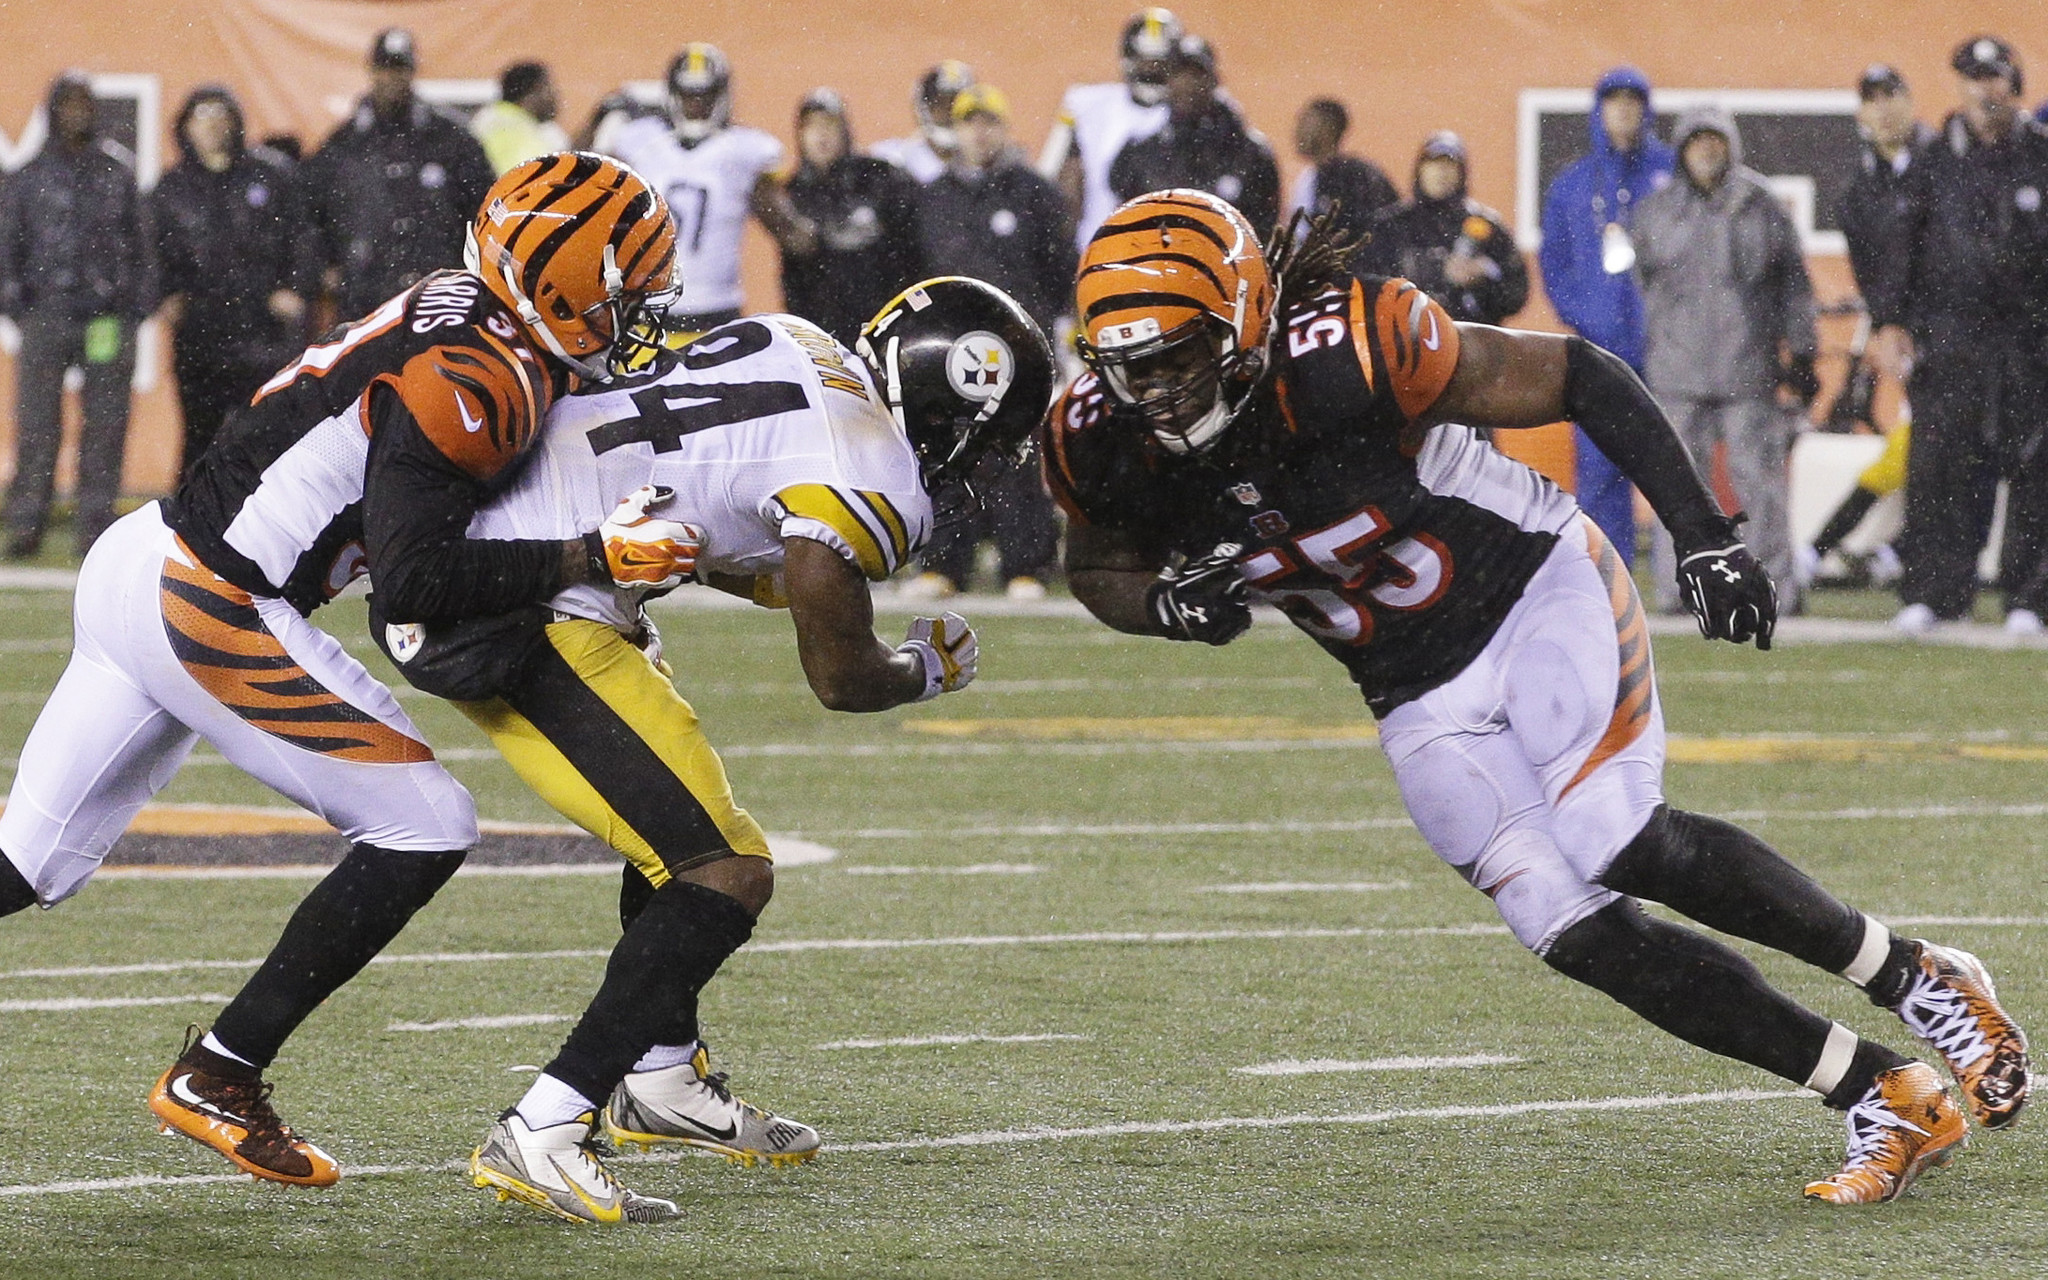 newest 3d36c a4348 Ravens downplaying revenge against Bengals LB Vontaze ...